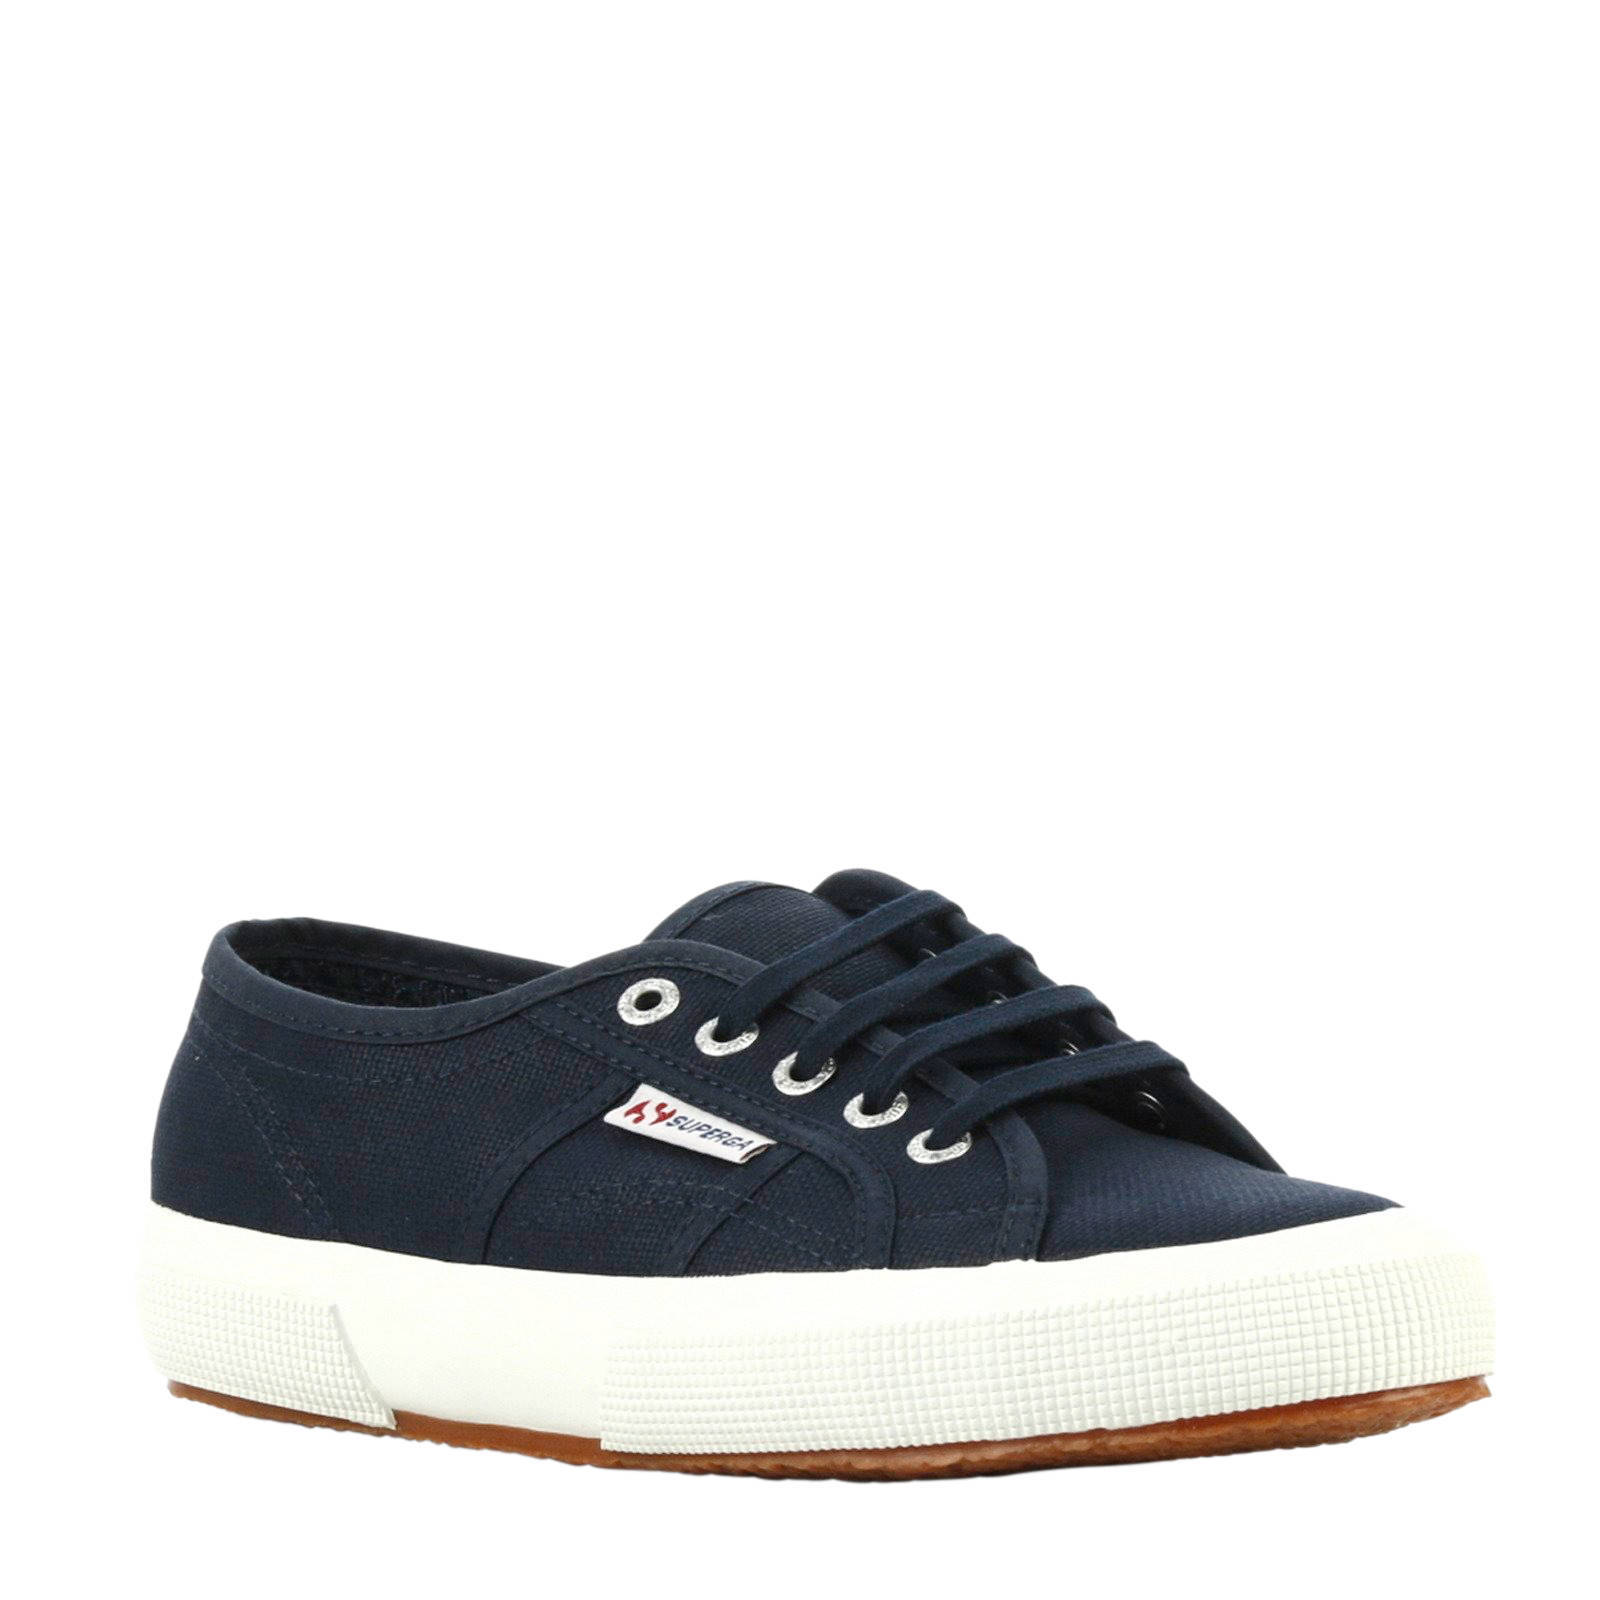 donkerblauw sneakers 2750 2750 Classic donkerblauw sneakers Classic 2750 Classic qwwv80